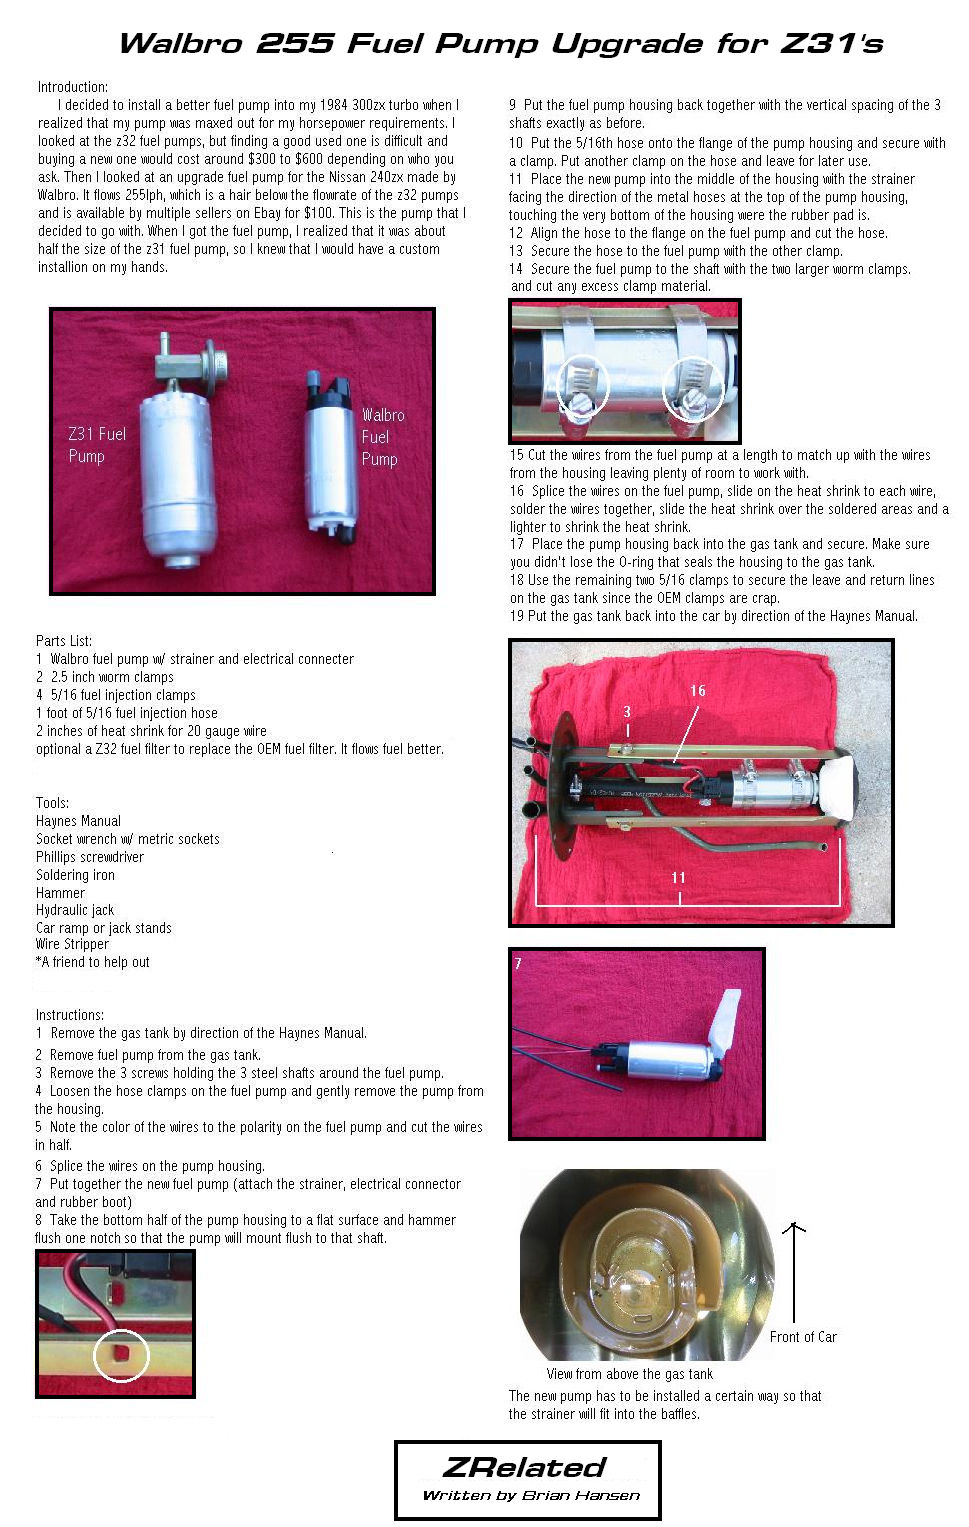 medium resolution of the stock z31 fuel pump same for na and turbo applications will have trouble keeping up fuel flow at anything over 300 crank hp